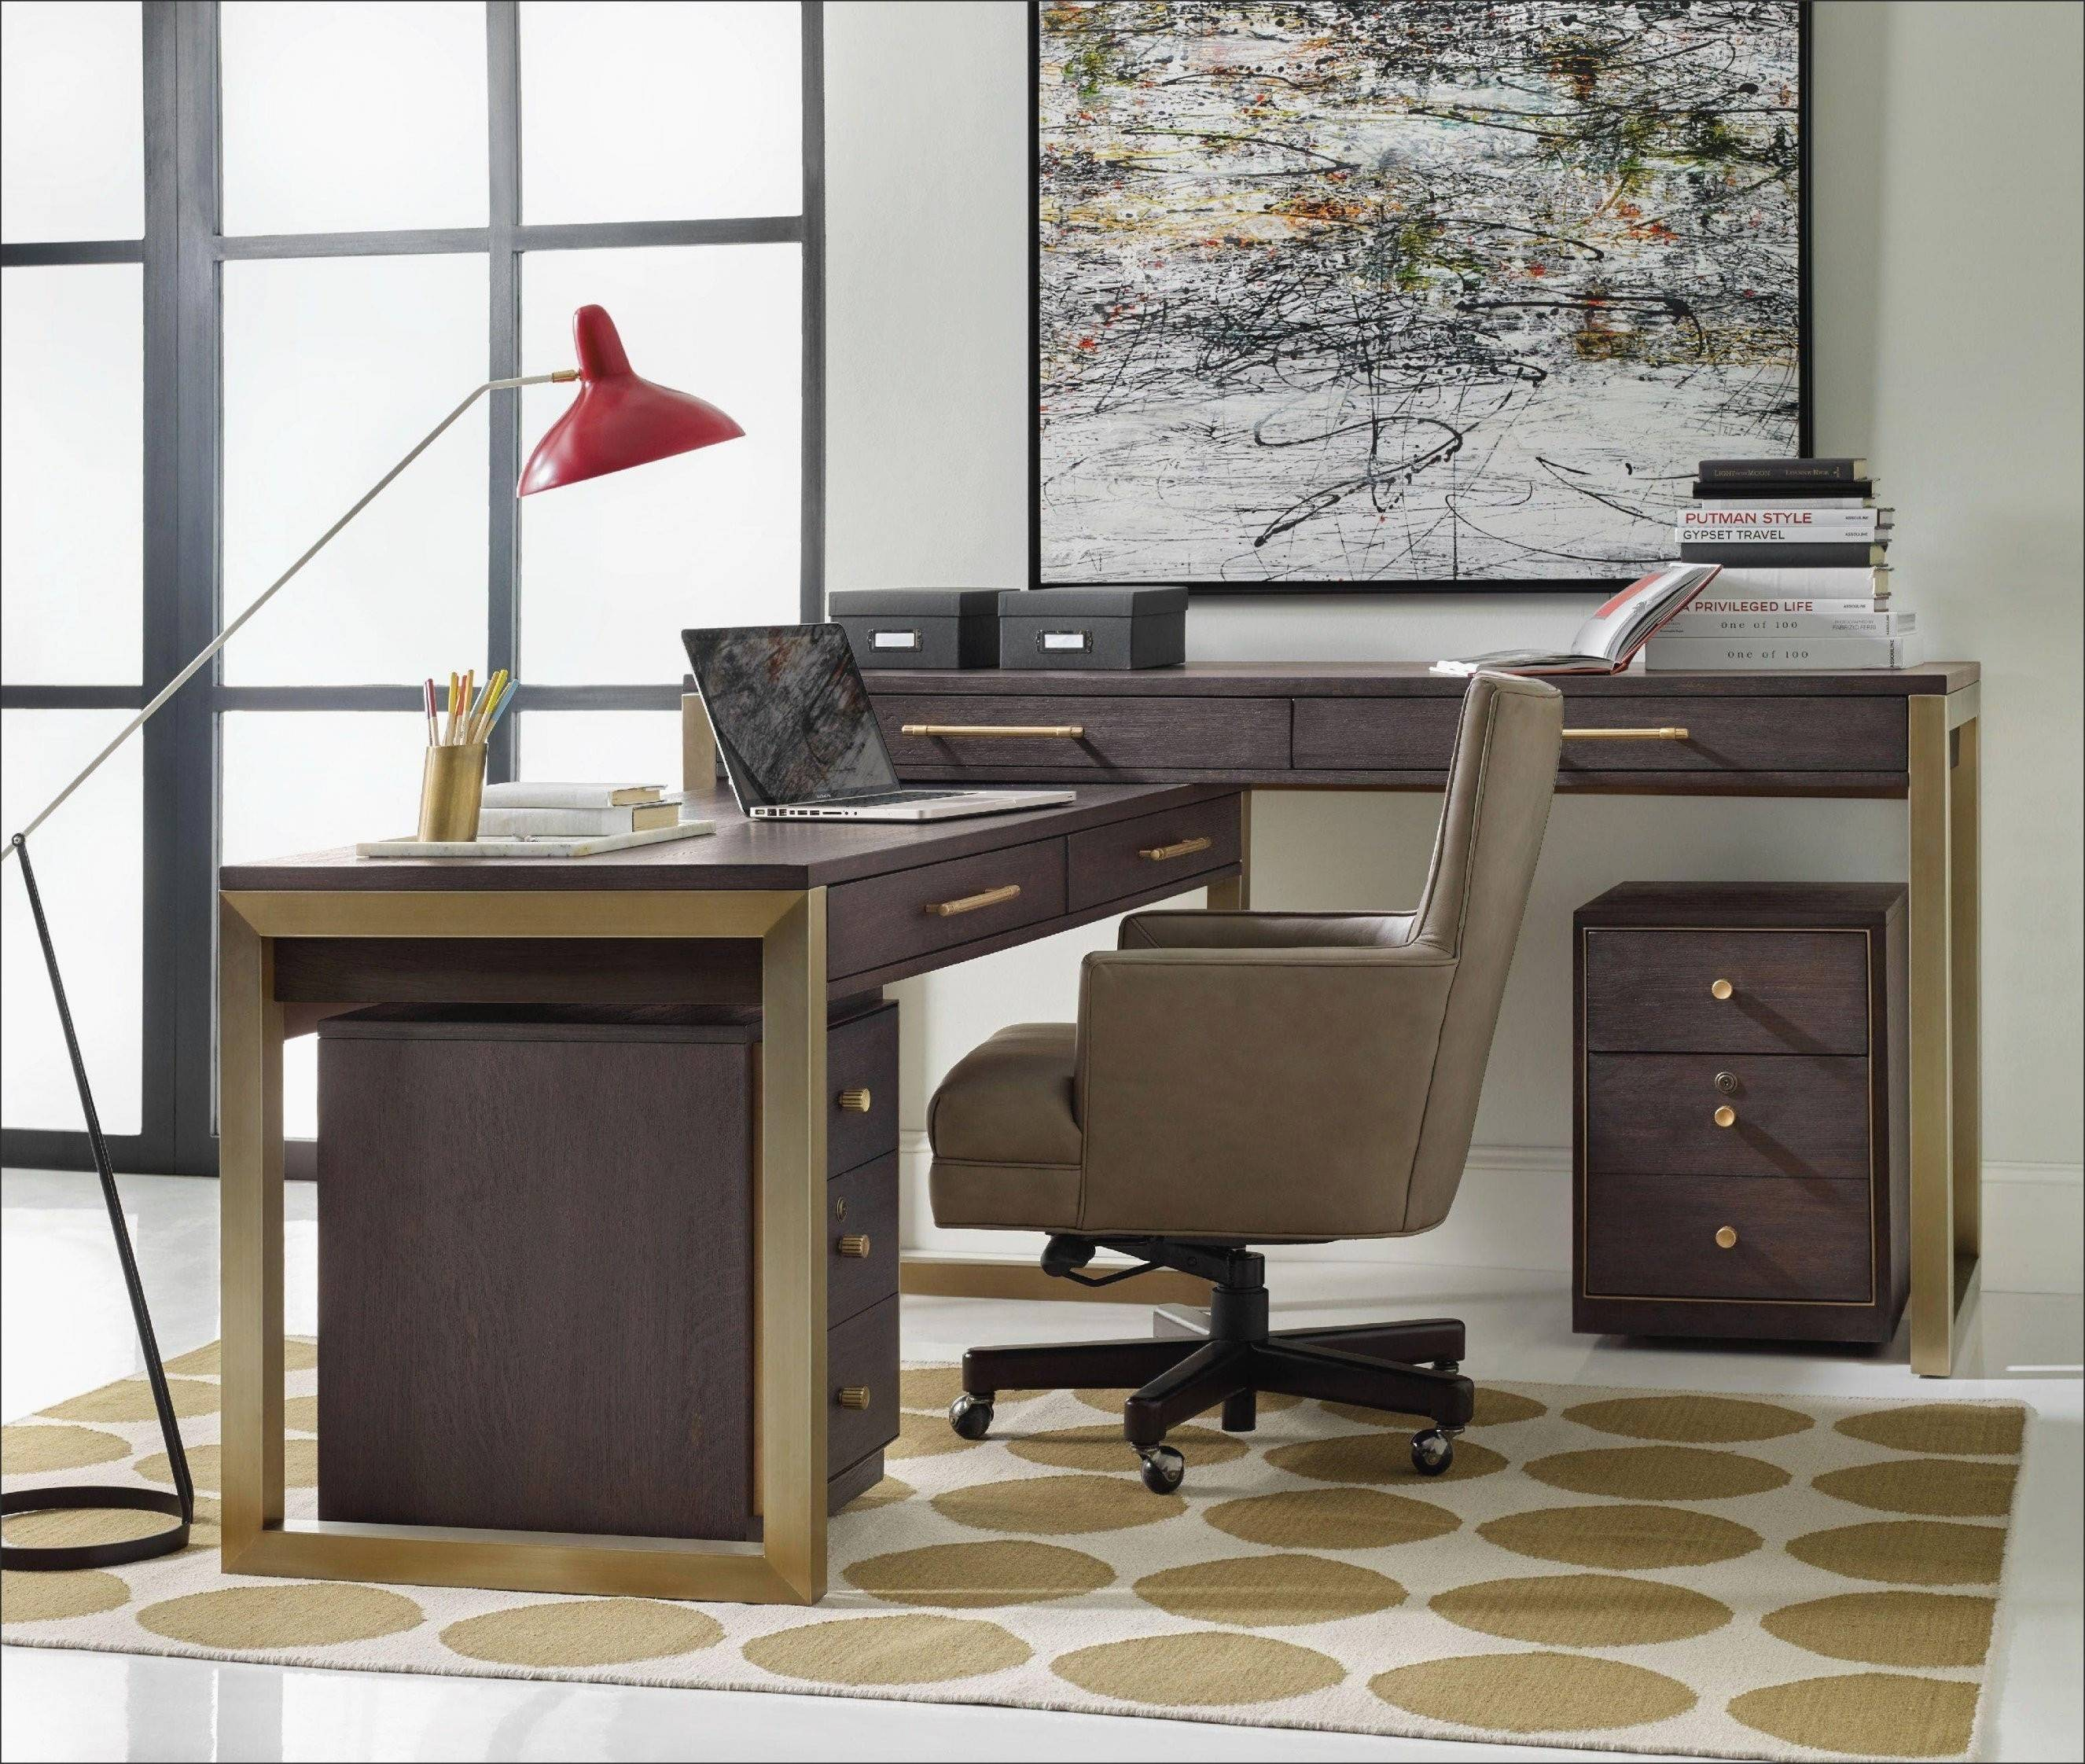 best of ideas for home office space 26 best home fice furniture wood pics home furniture ideas of ideas for home office space